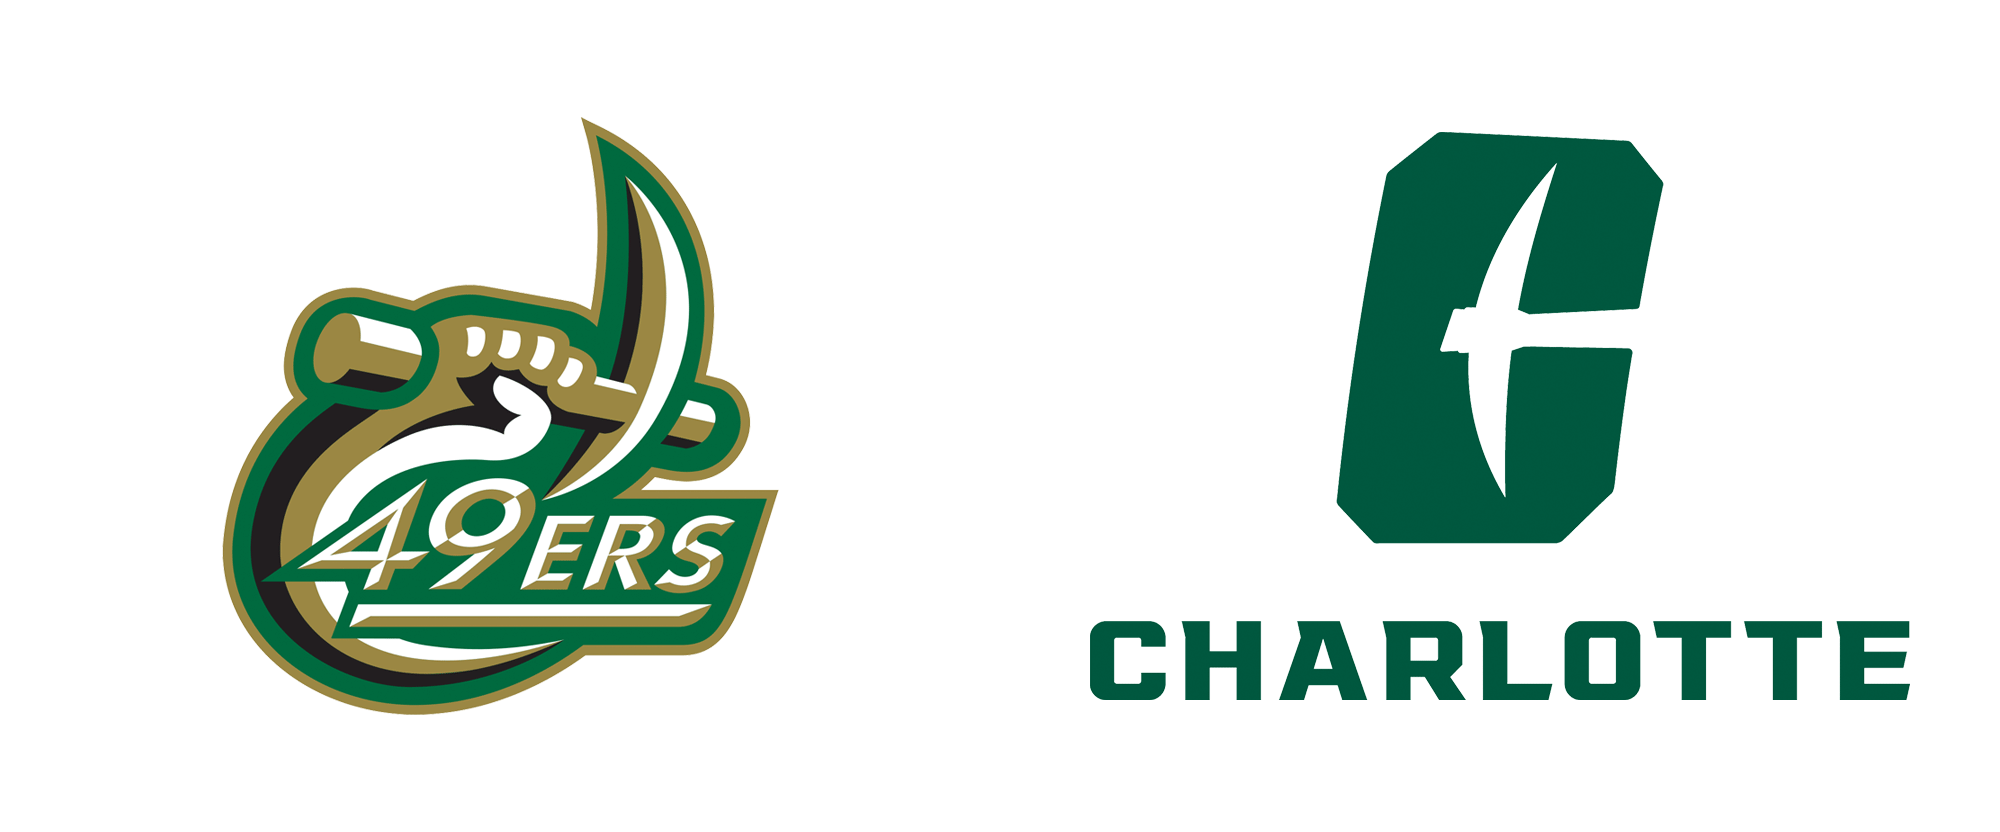 New Logos for Charlotte 49ers by Luquire George Andrews